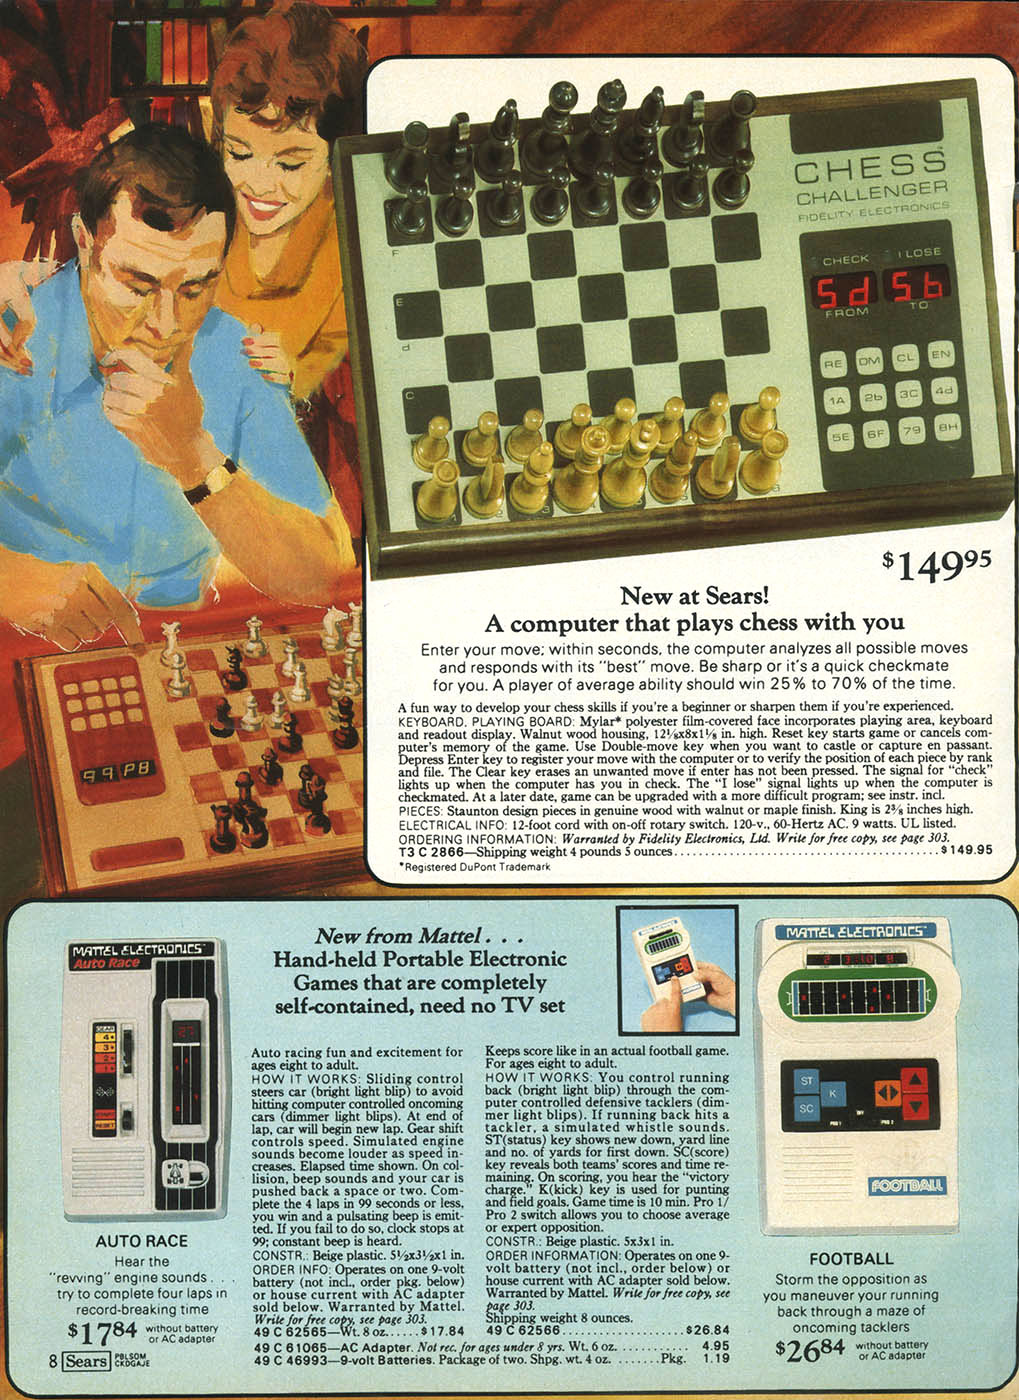 Retro Toys And Videogames From The Sears Christmas Wish